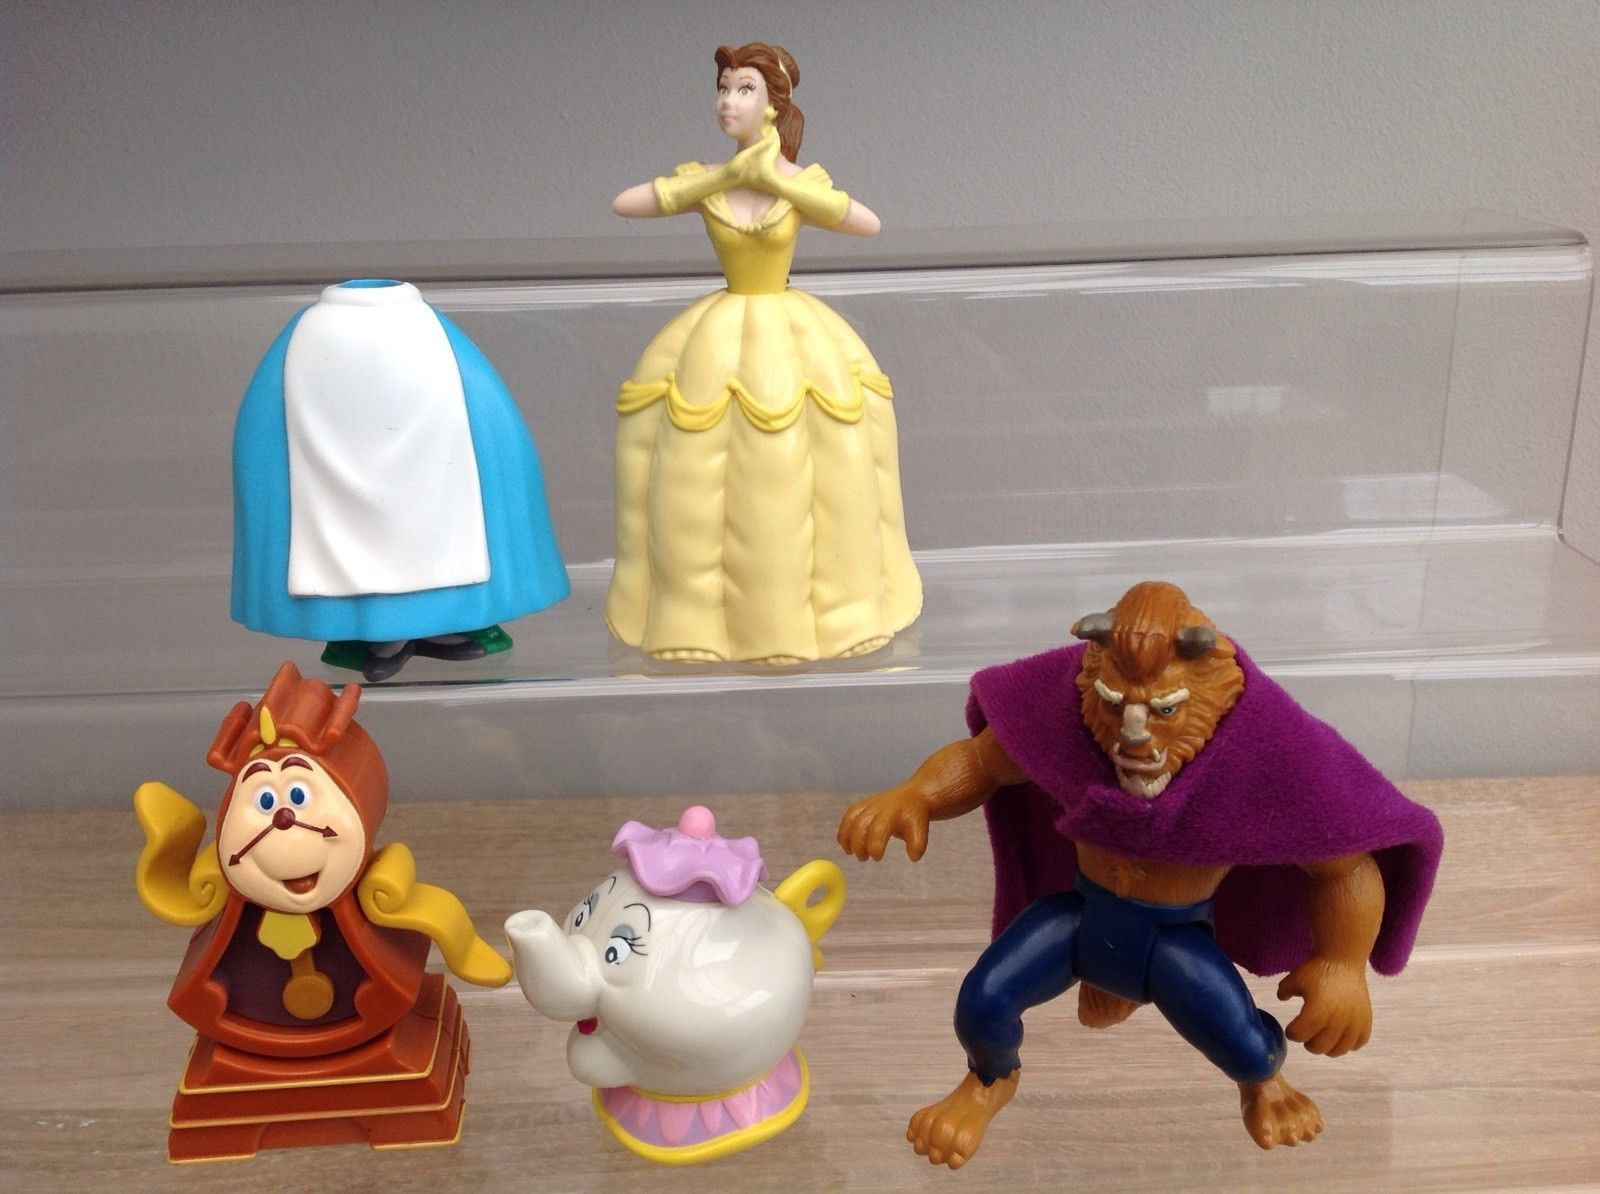 Mcdonalds Disney Beauty And The Beast Complete Full Set Figures Toys